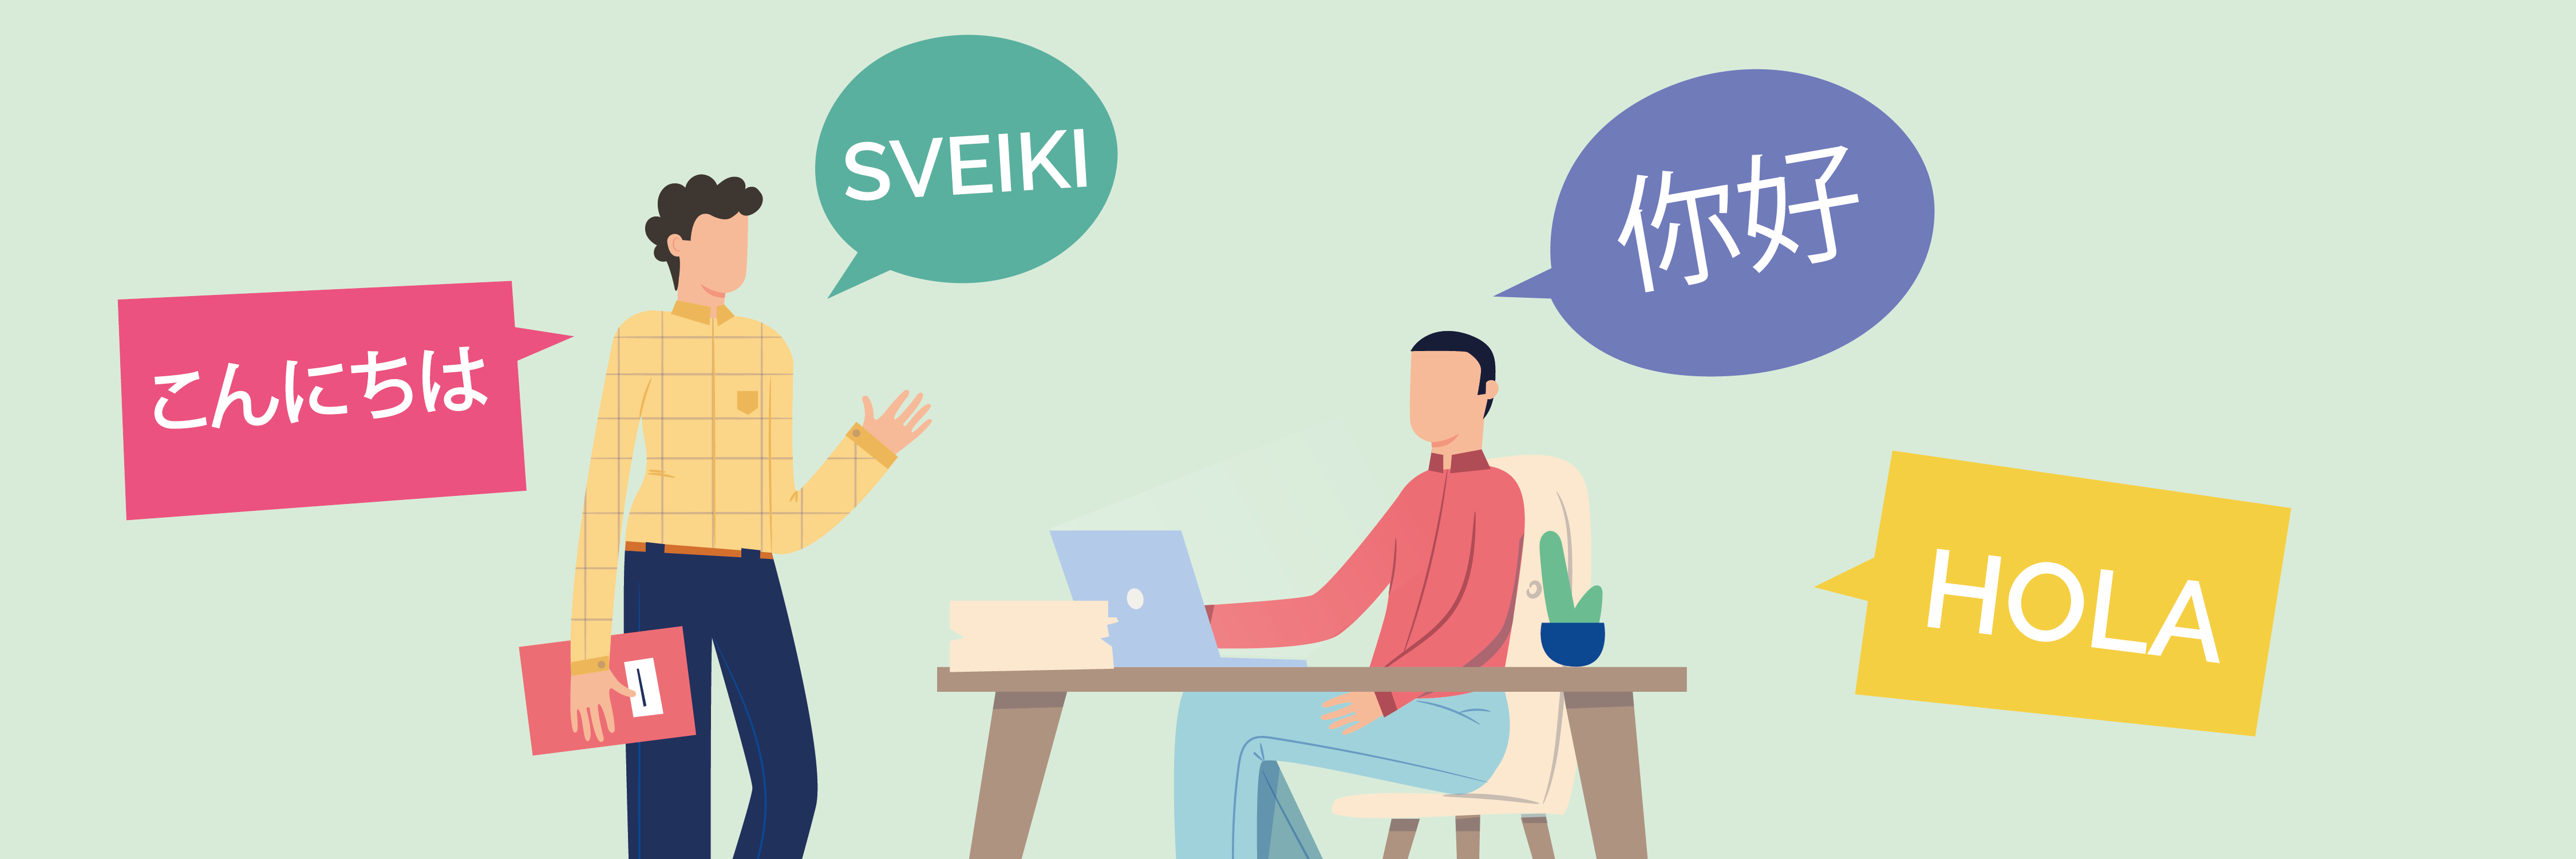 Translation-Service-People-Talking-In-Different-Languages